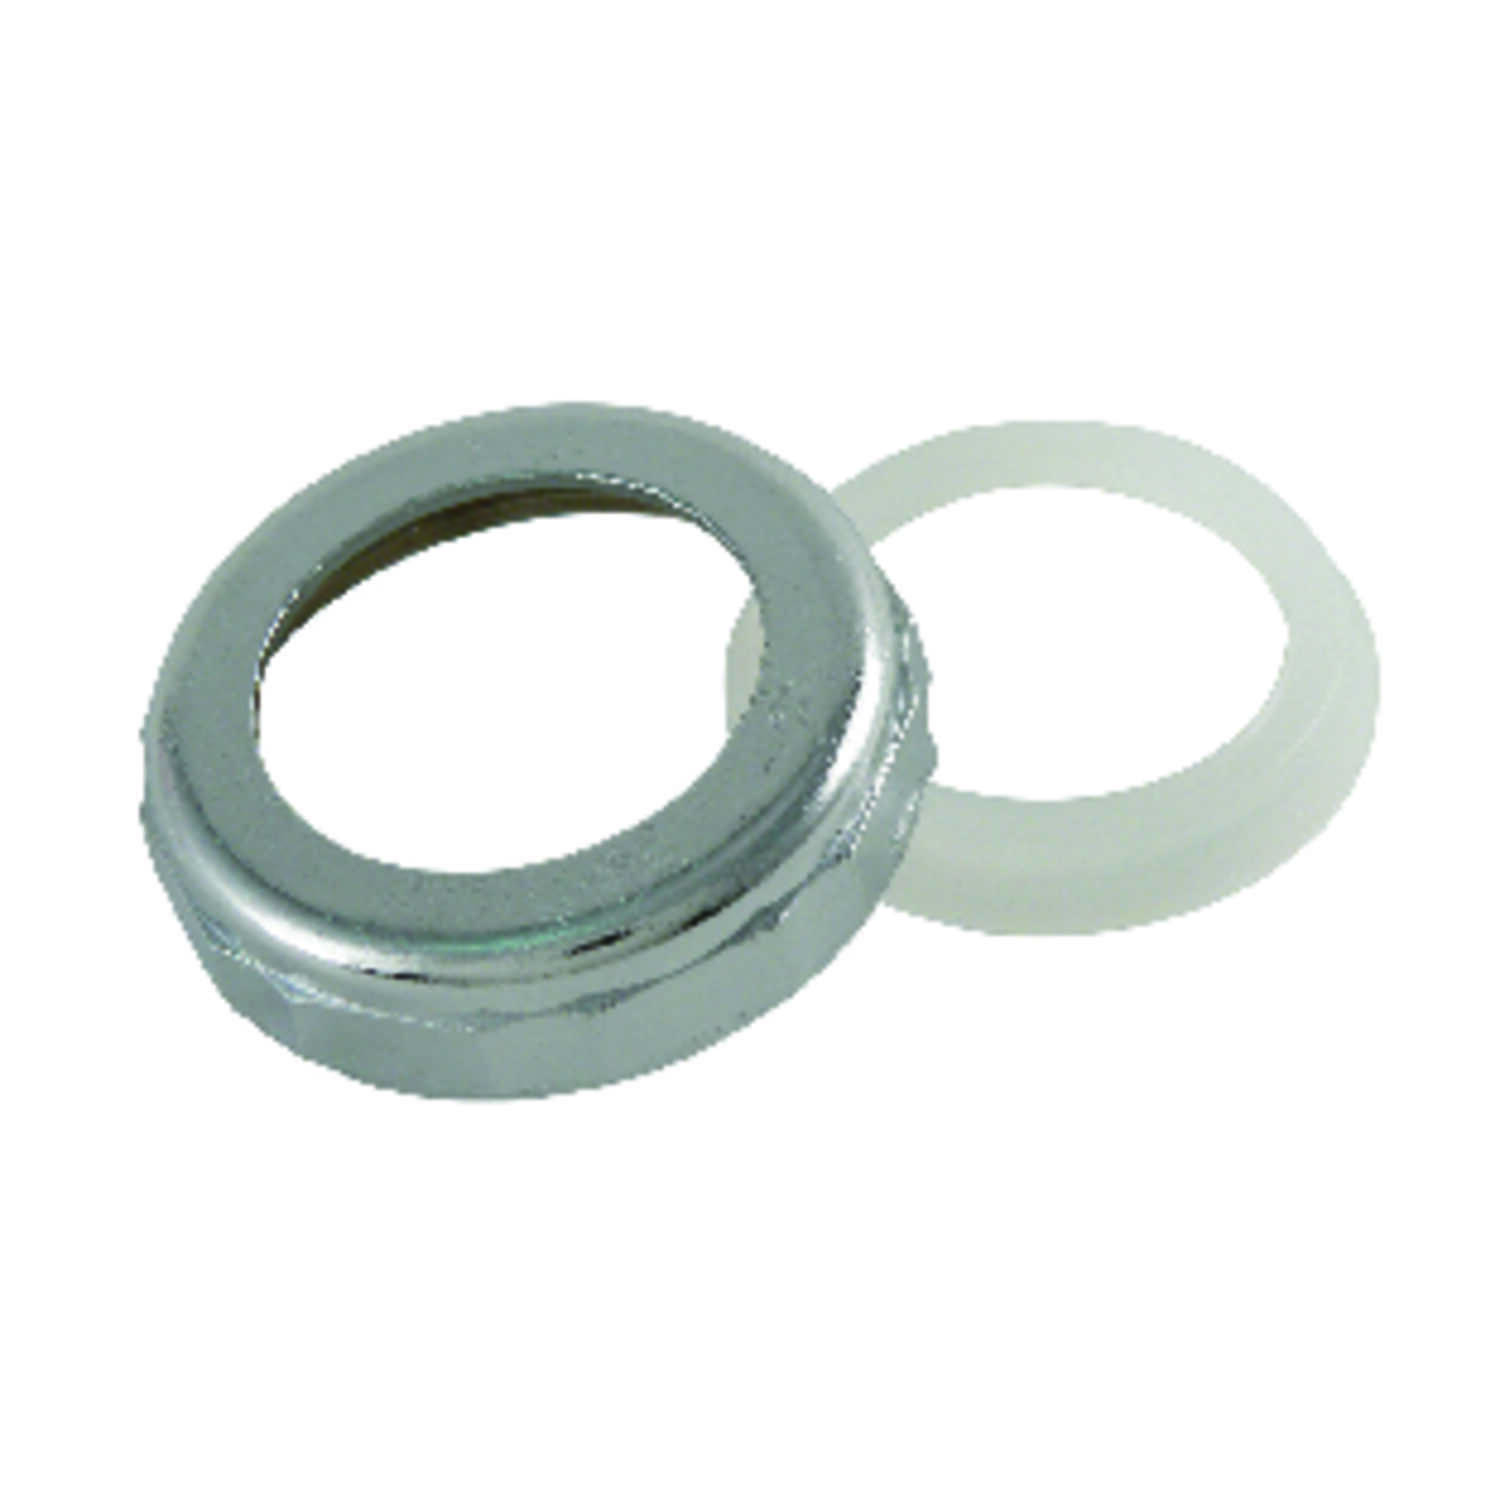 Ace  1-1/2 in. Dia. Metal  Slip Joint Nut and Washer  1 pk